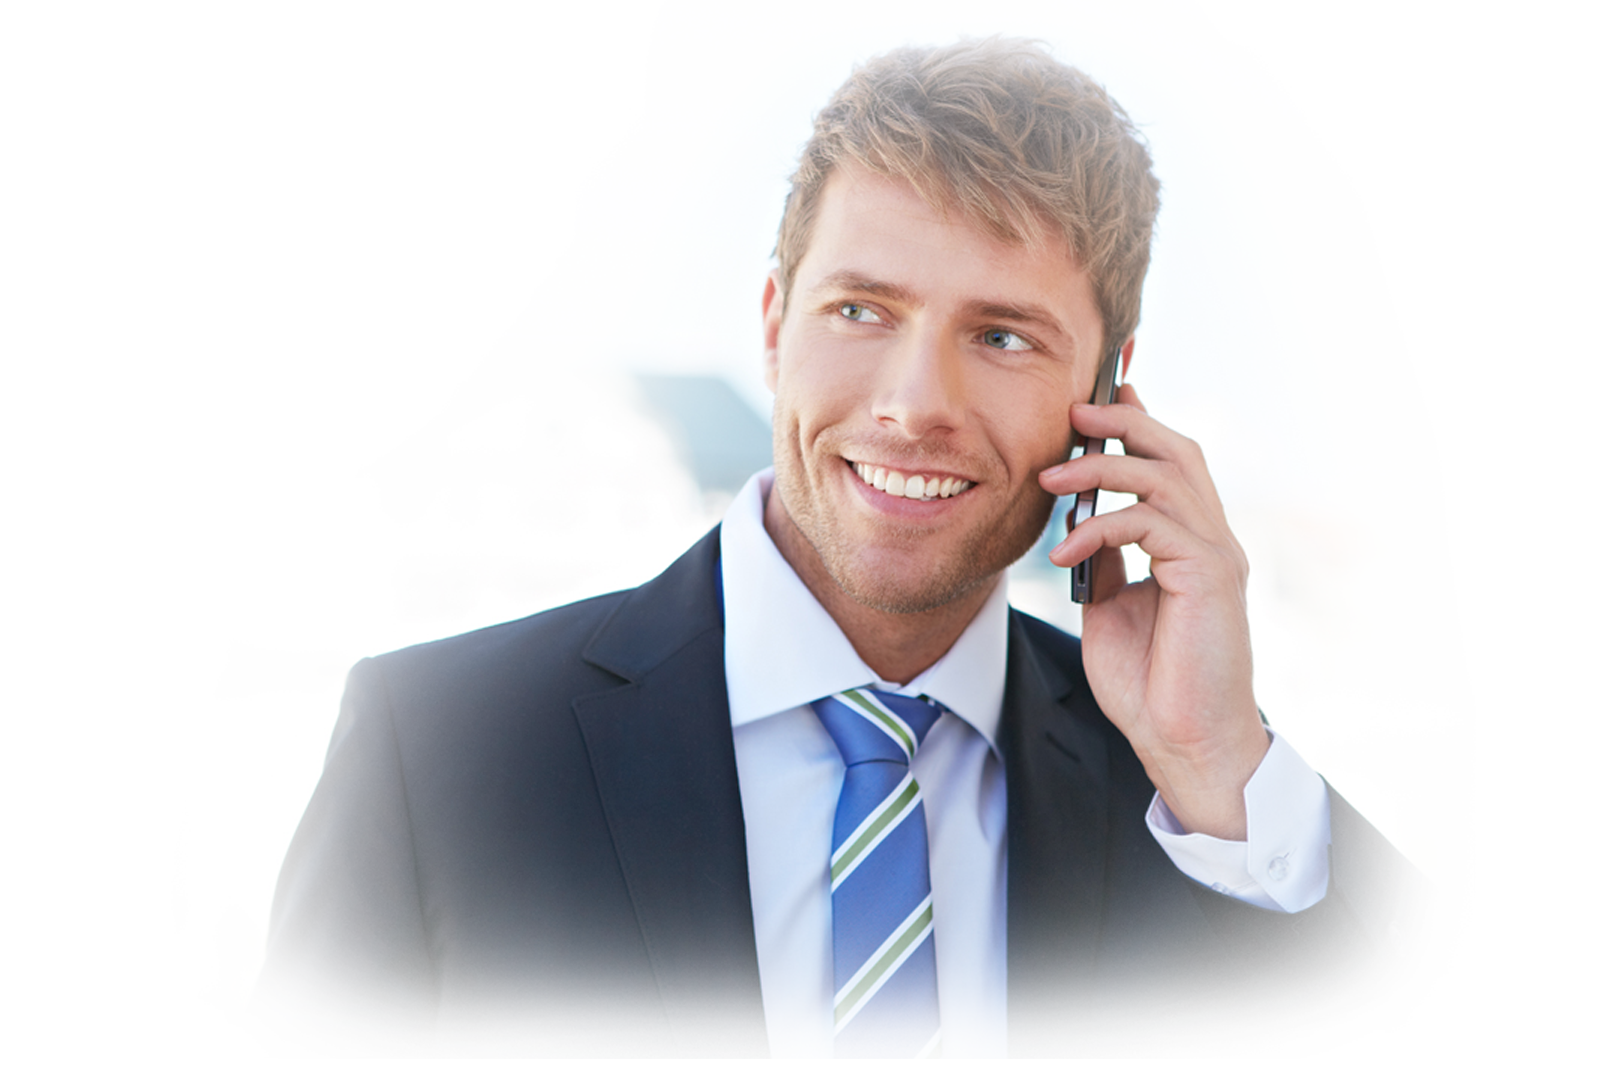 Businessman on the phone png. Network management powernet america